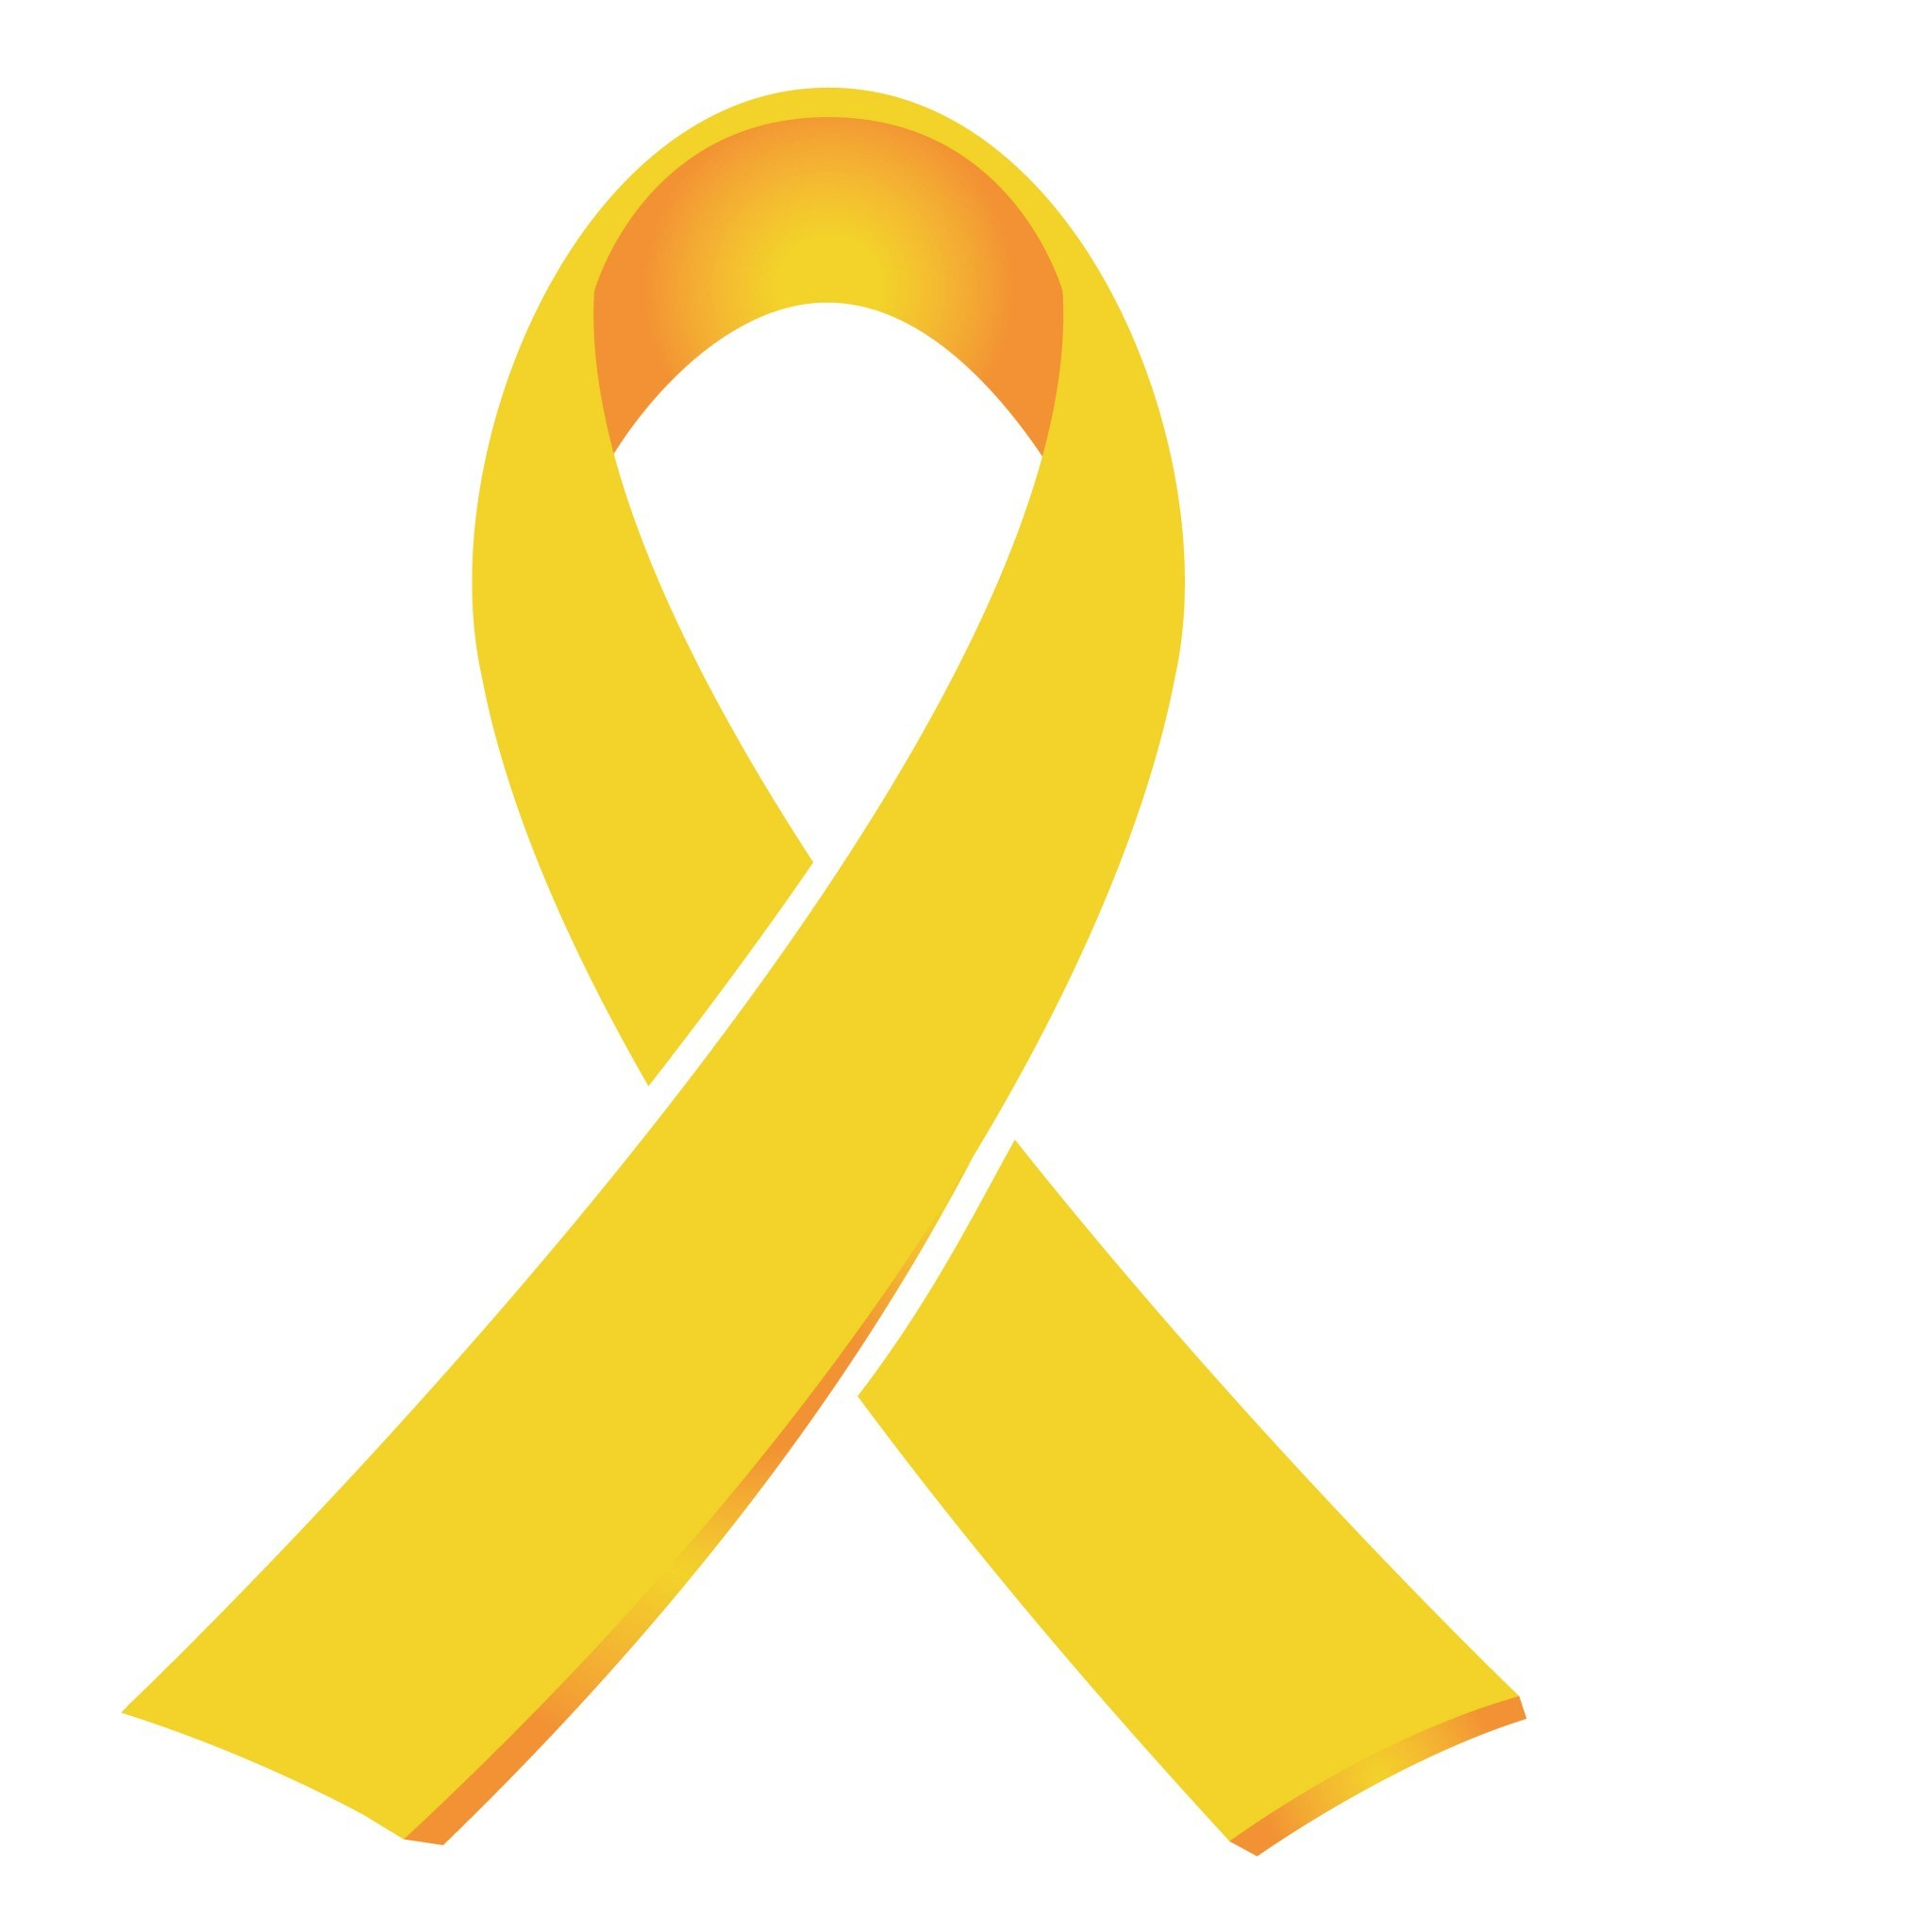 Childhood cancer awareness ribbon clipart 2 » Clipart Portal.